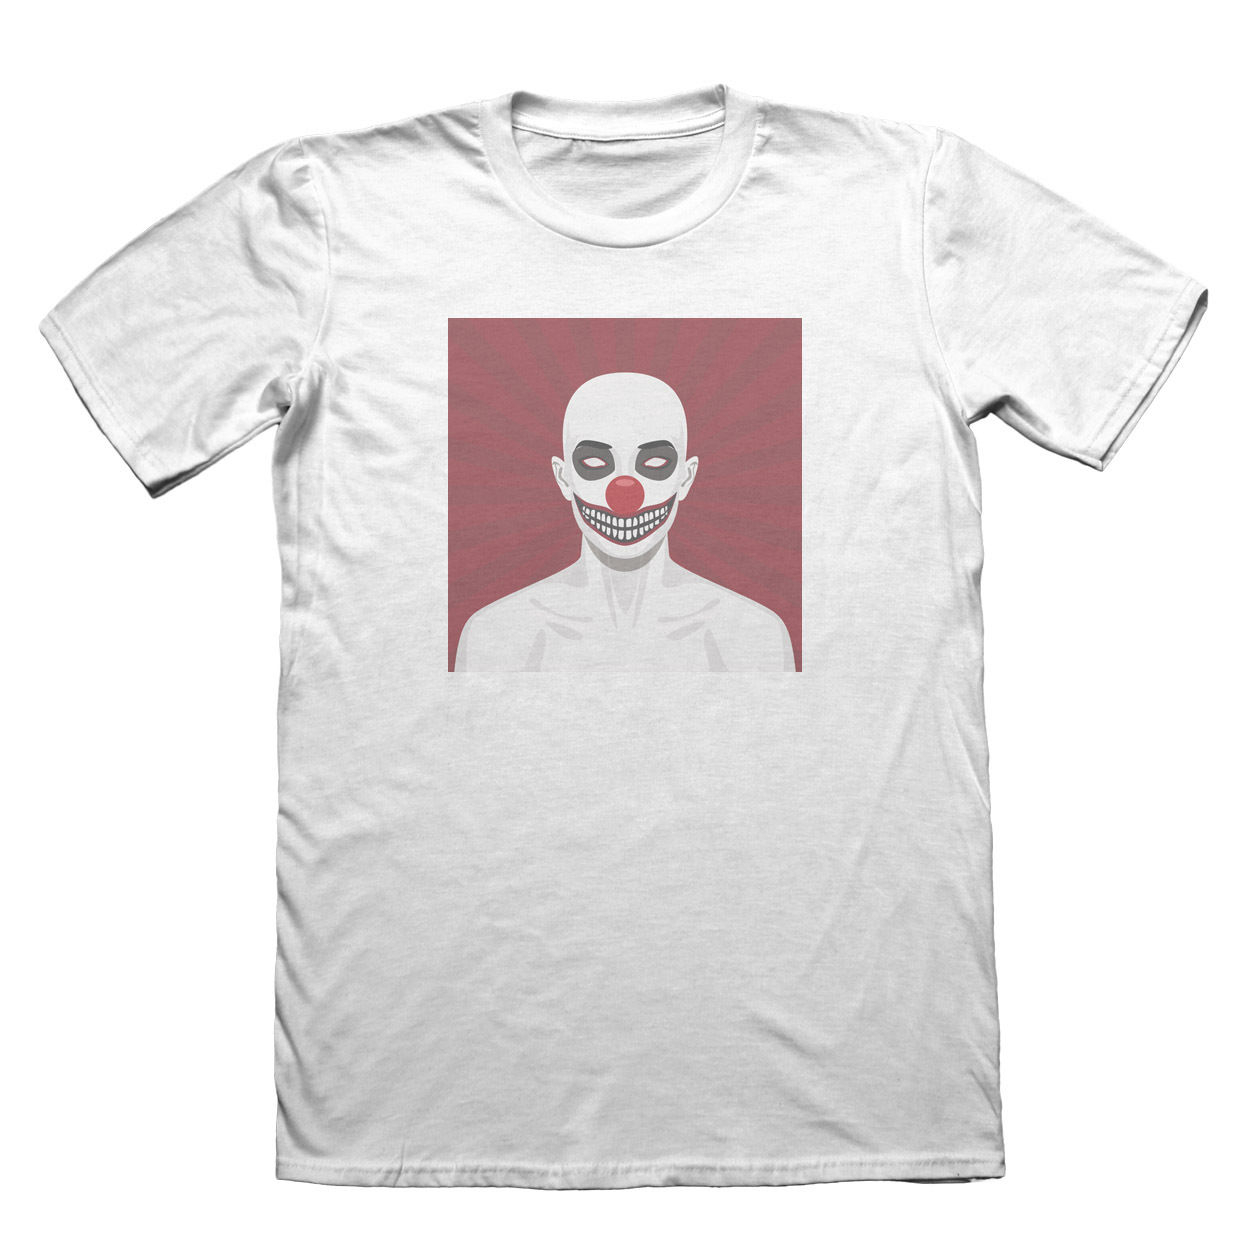 Scary Clown T-Shirt - Mens Fathers Day Christmas Gift #7423